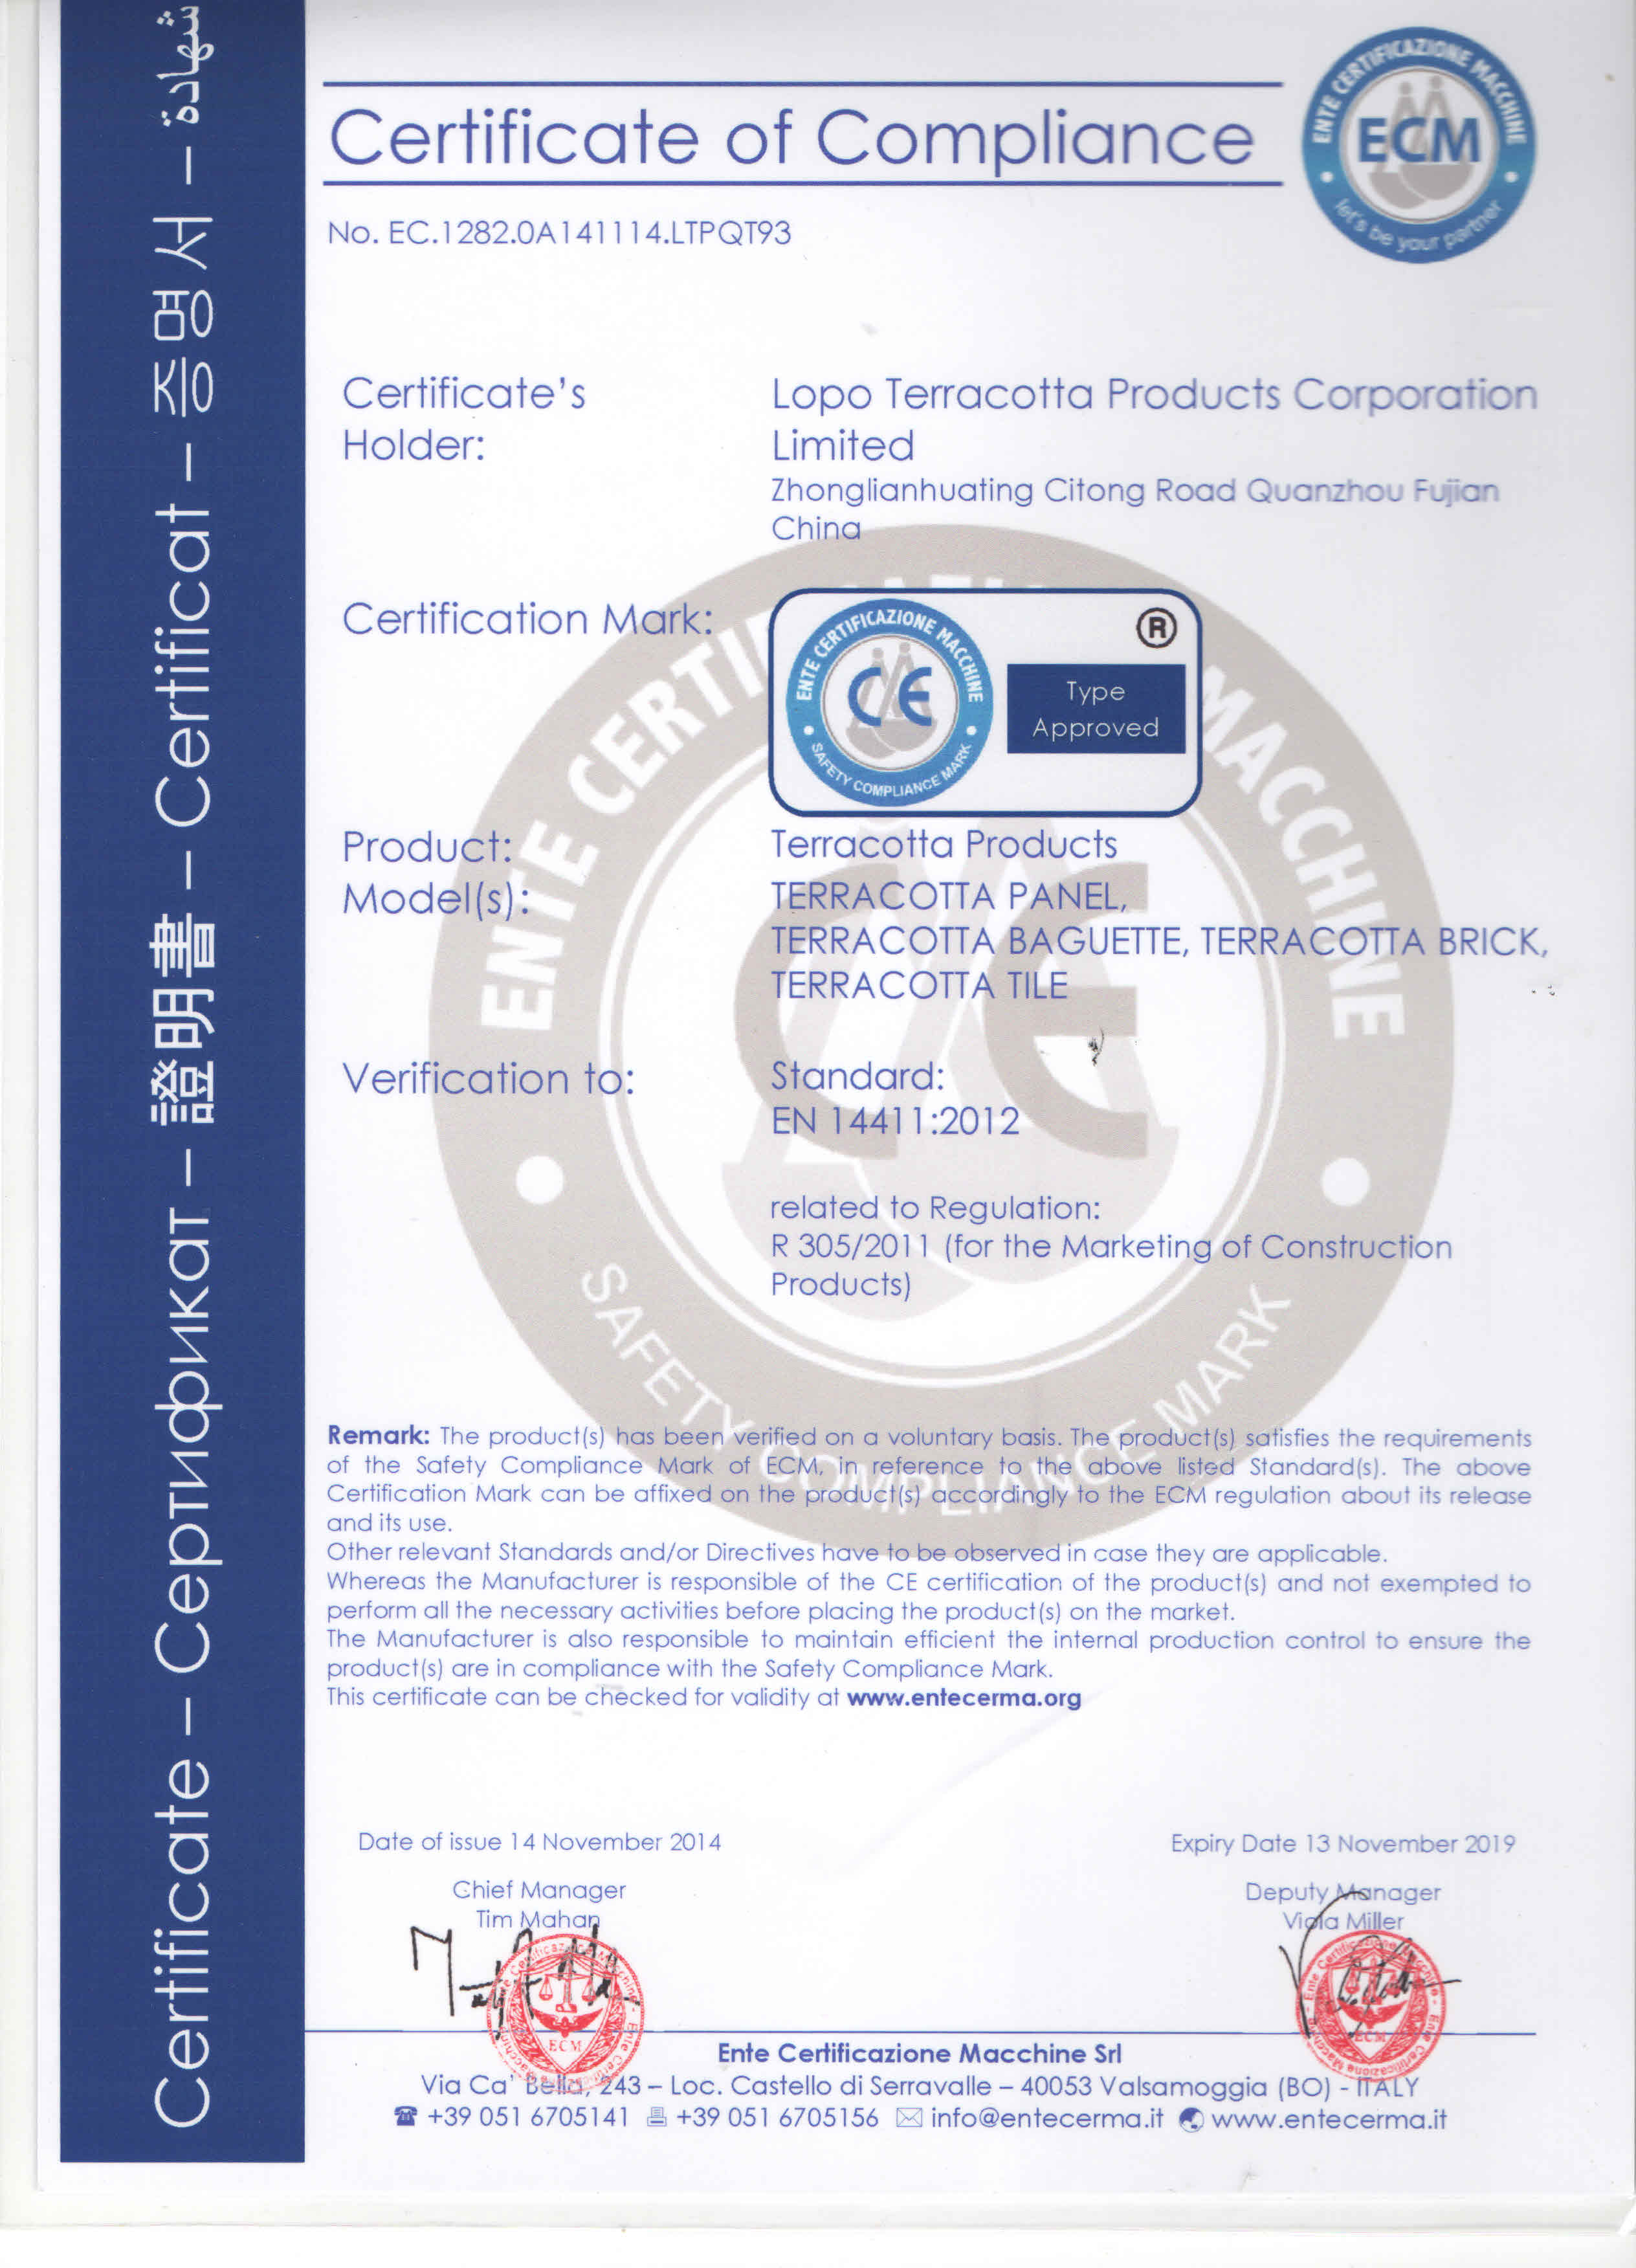 LOPO Get Newest CE Certificates From ECM